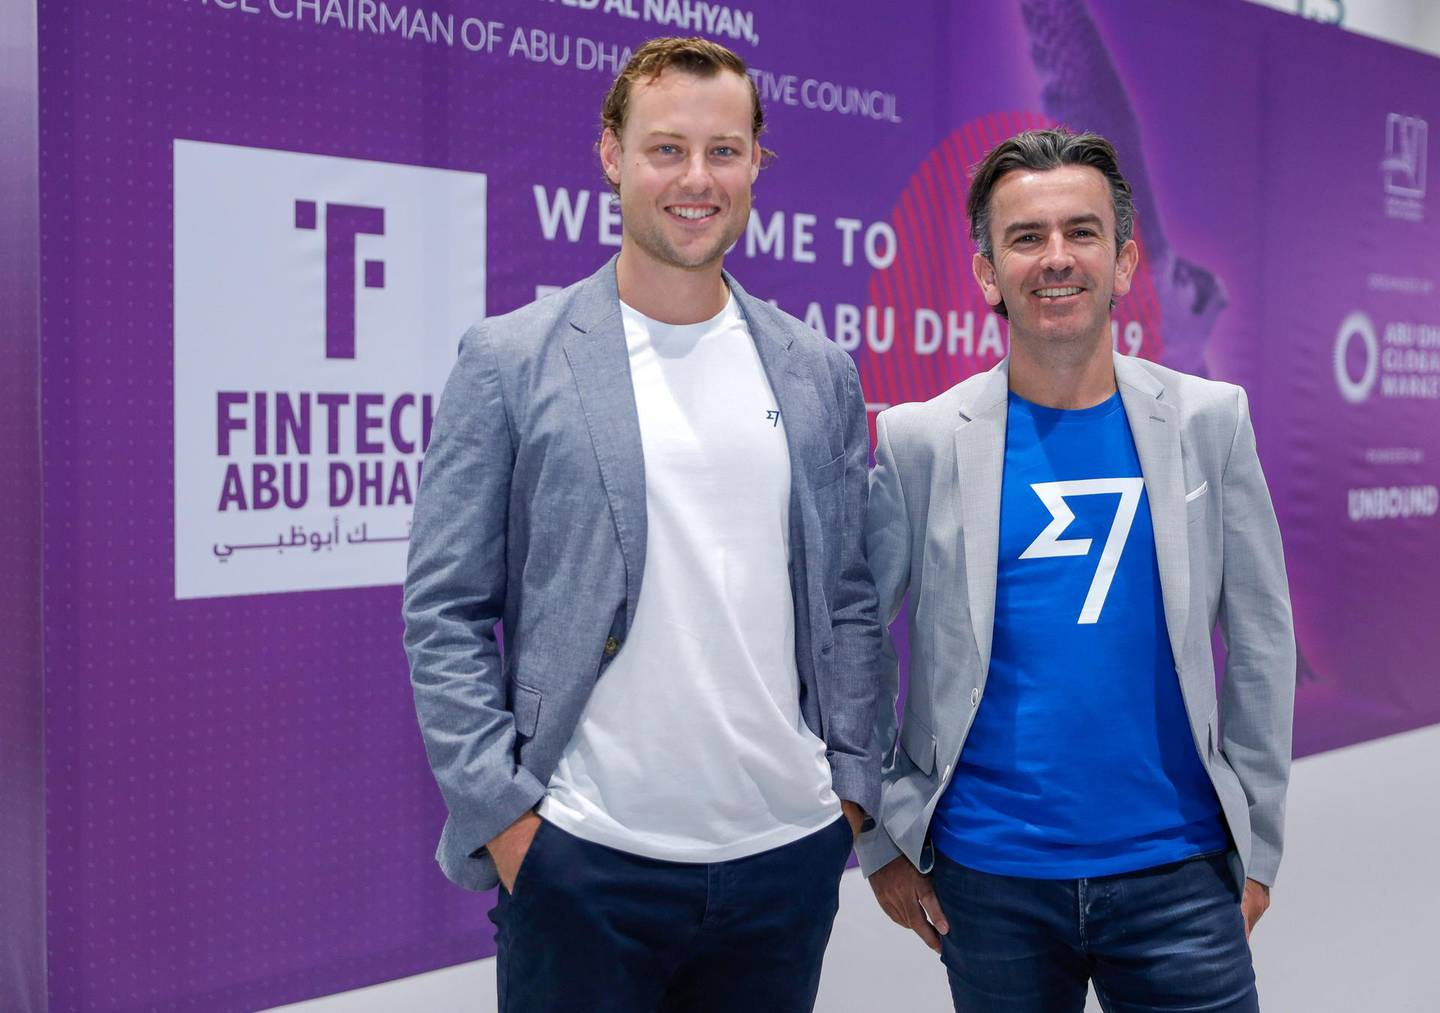 Abu Dhabi, United Arab Emirates, October 22, 2019.  Description:SECTION: BusinessSTORY BRIEF: Fintech Abu Dhabi  SUBJECT NAME: Fintech Abu Dhabi--  Matthew Briers, CFO, TransferWise and Tim Harley, TransferWise Head of Middle East.Victor Besa/The NationalSection:  BZReporter:  Nada El Sawy